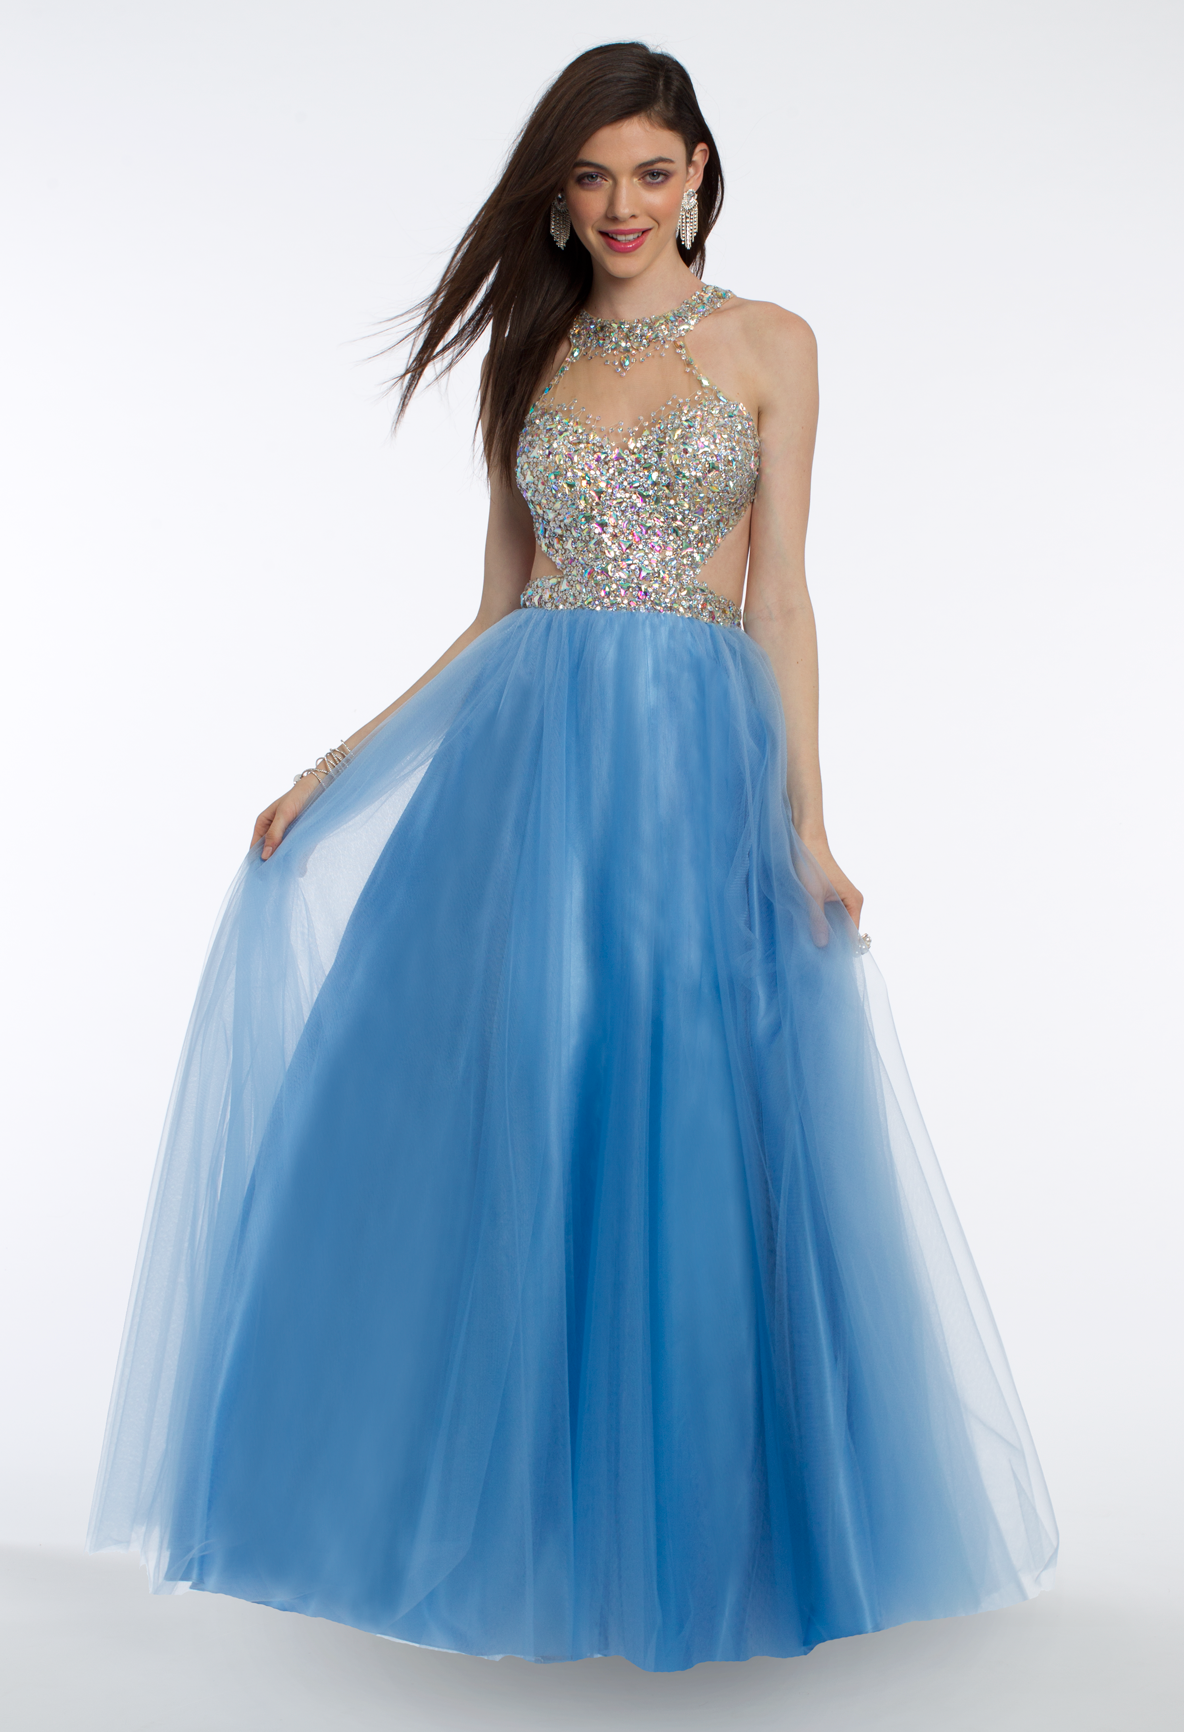 This sparkling ballgown dress is fairy-tale style with a twist ...